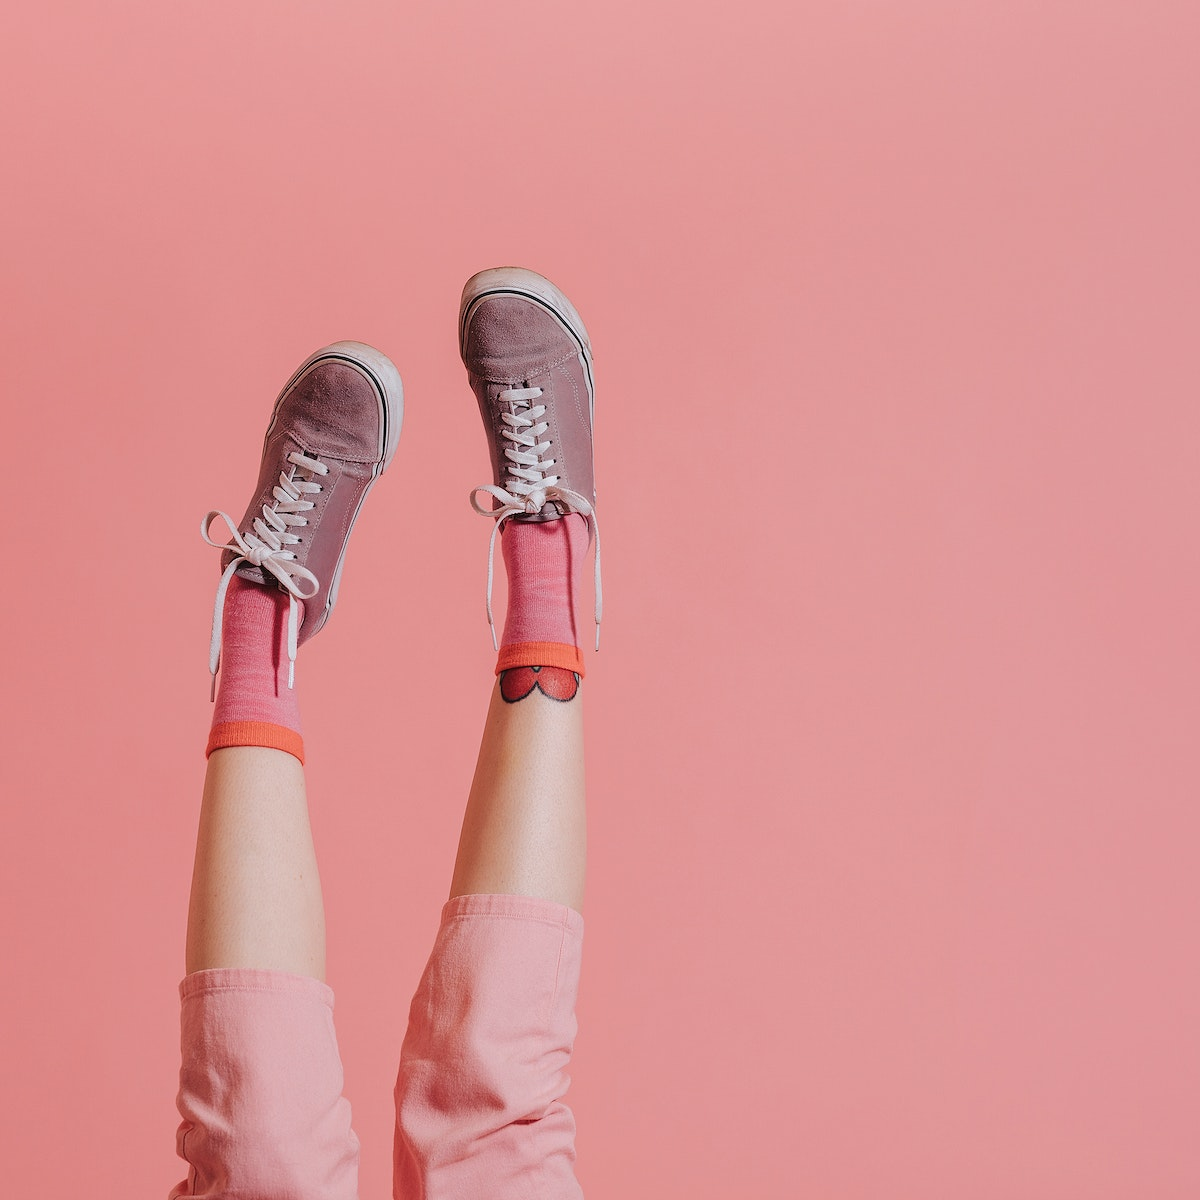 Woman legs in pink pants up in the air